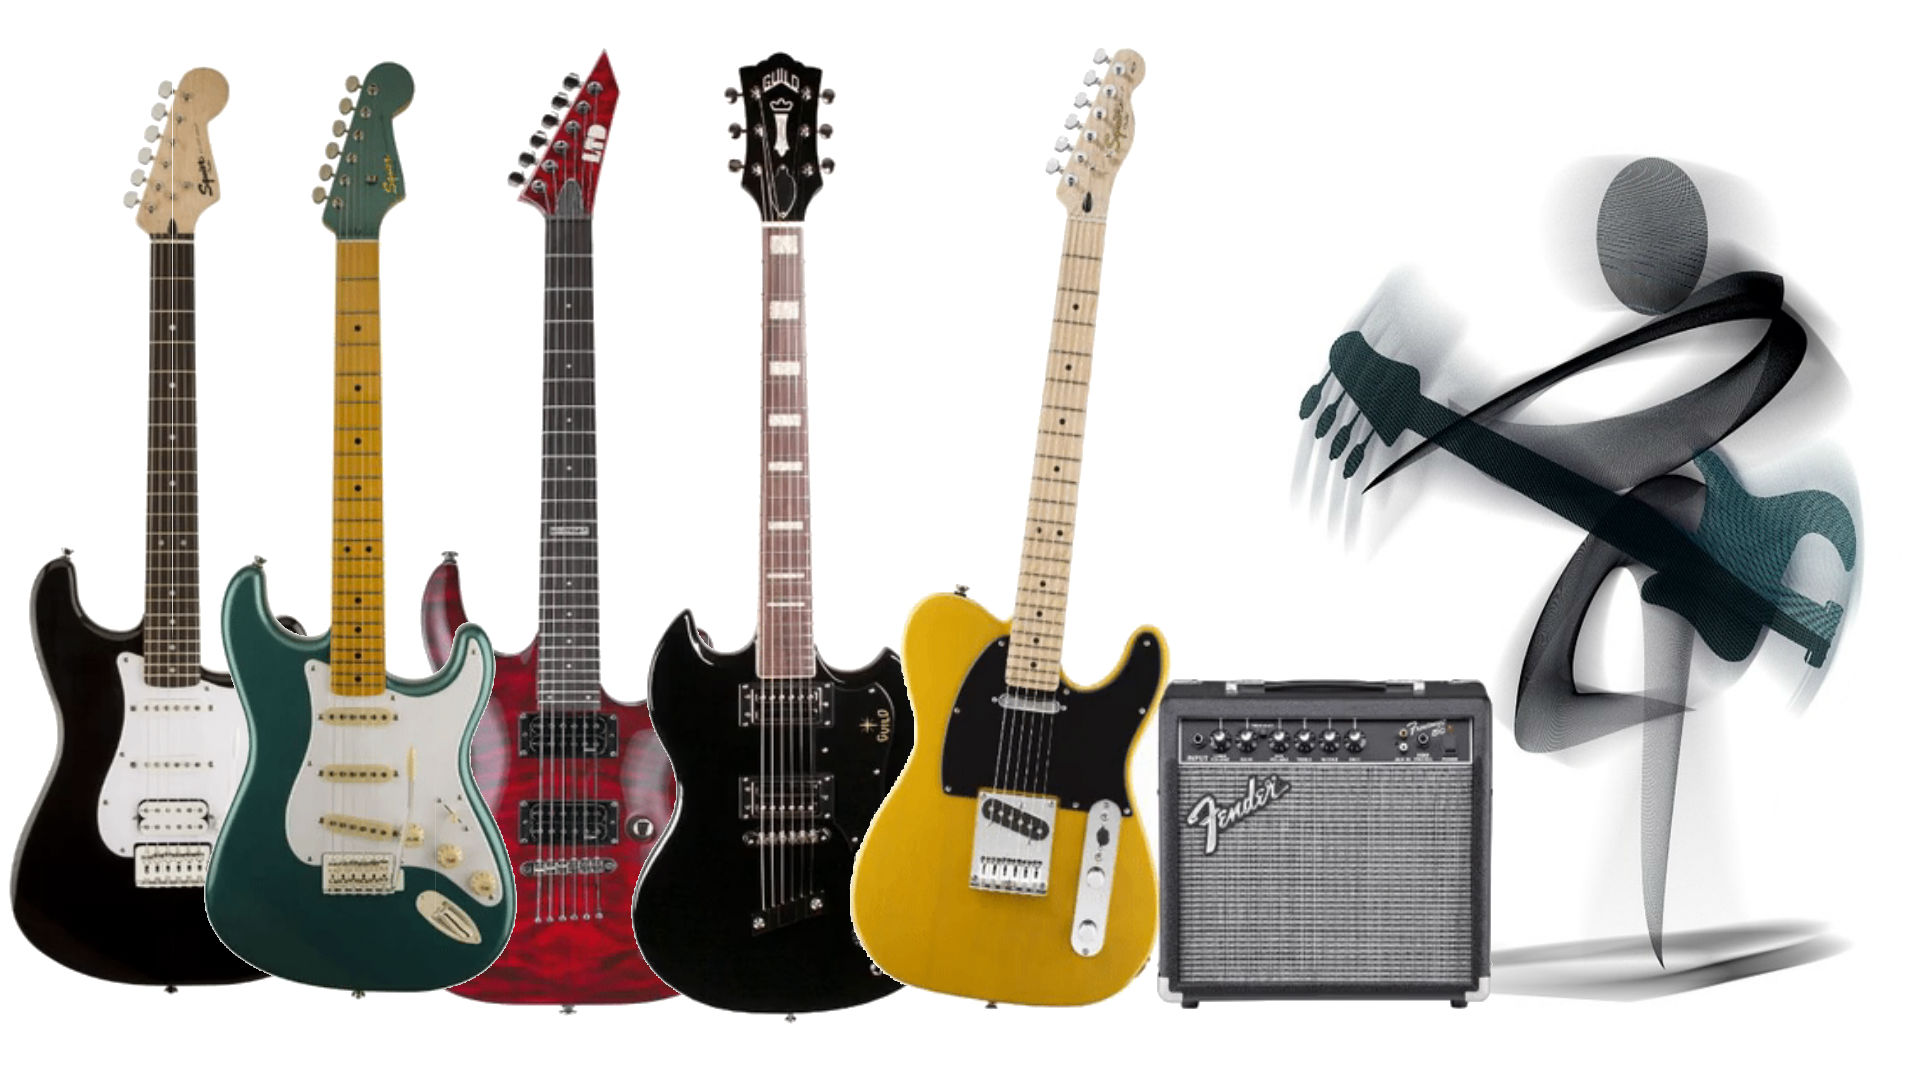 drunkat_guitarras_electricas_final.jpg